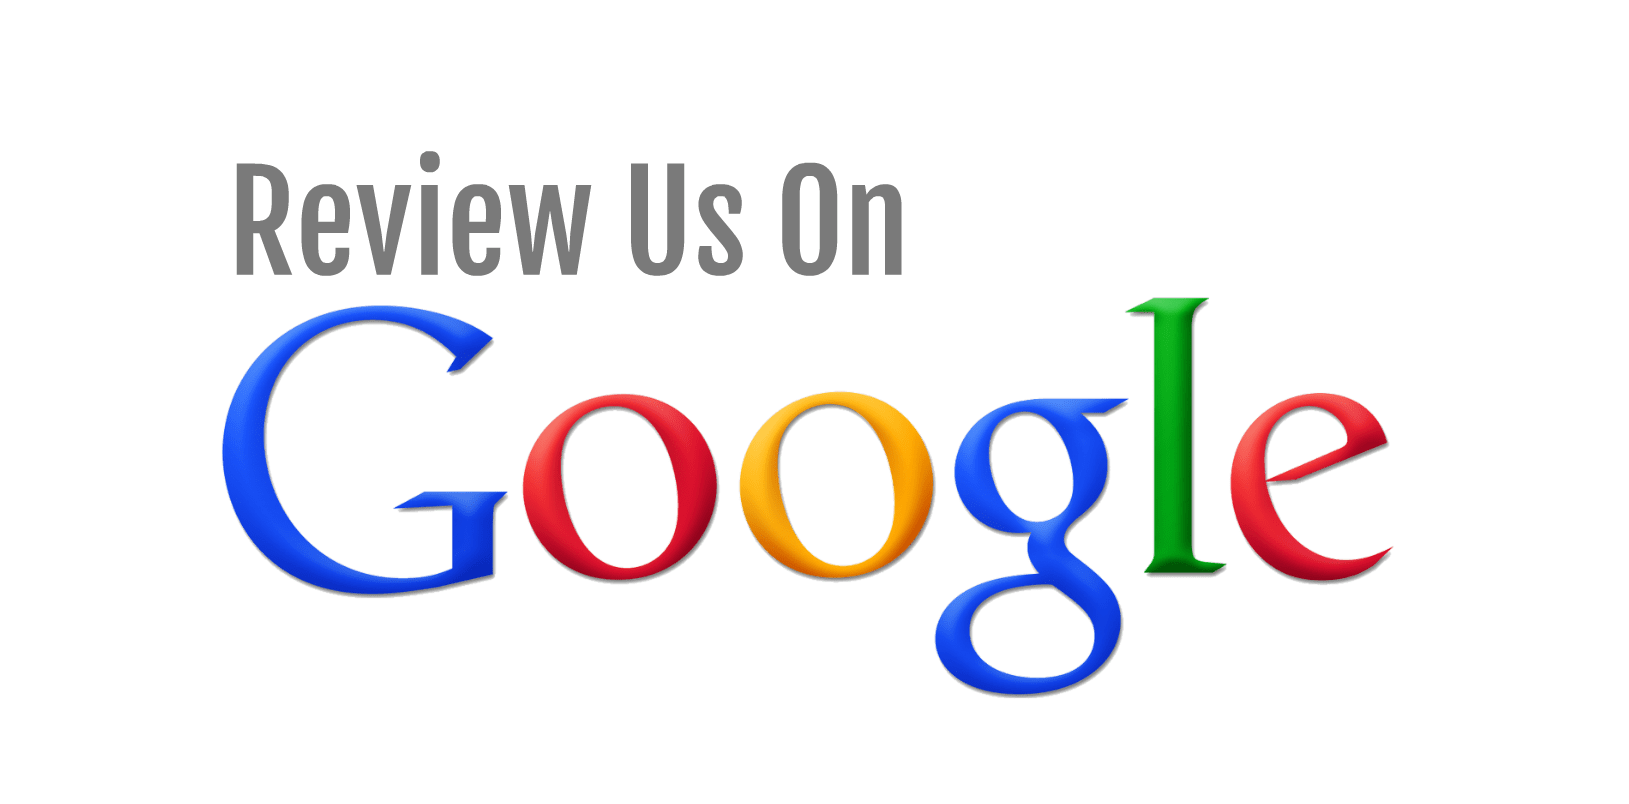 review_us_on_Google_logo